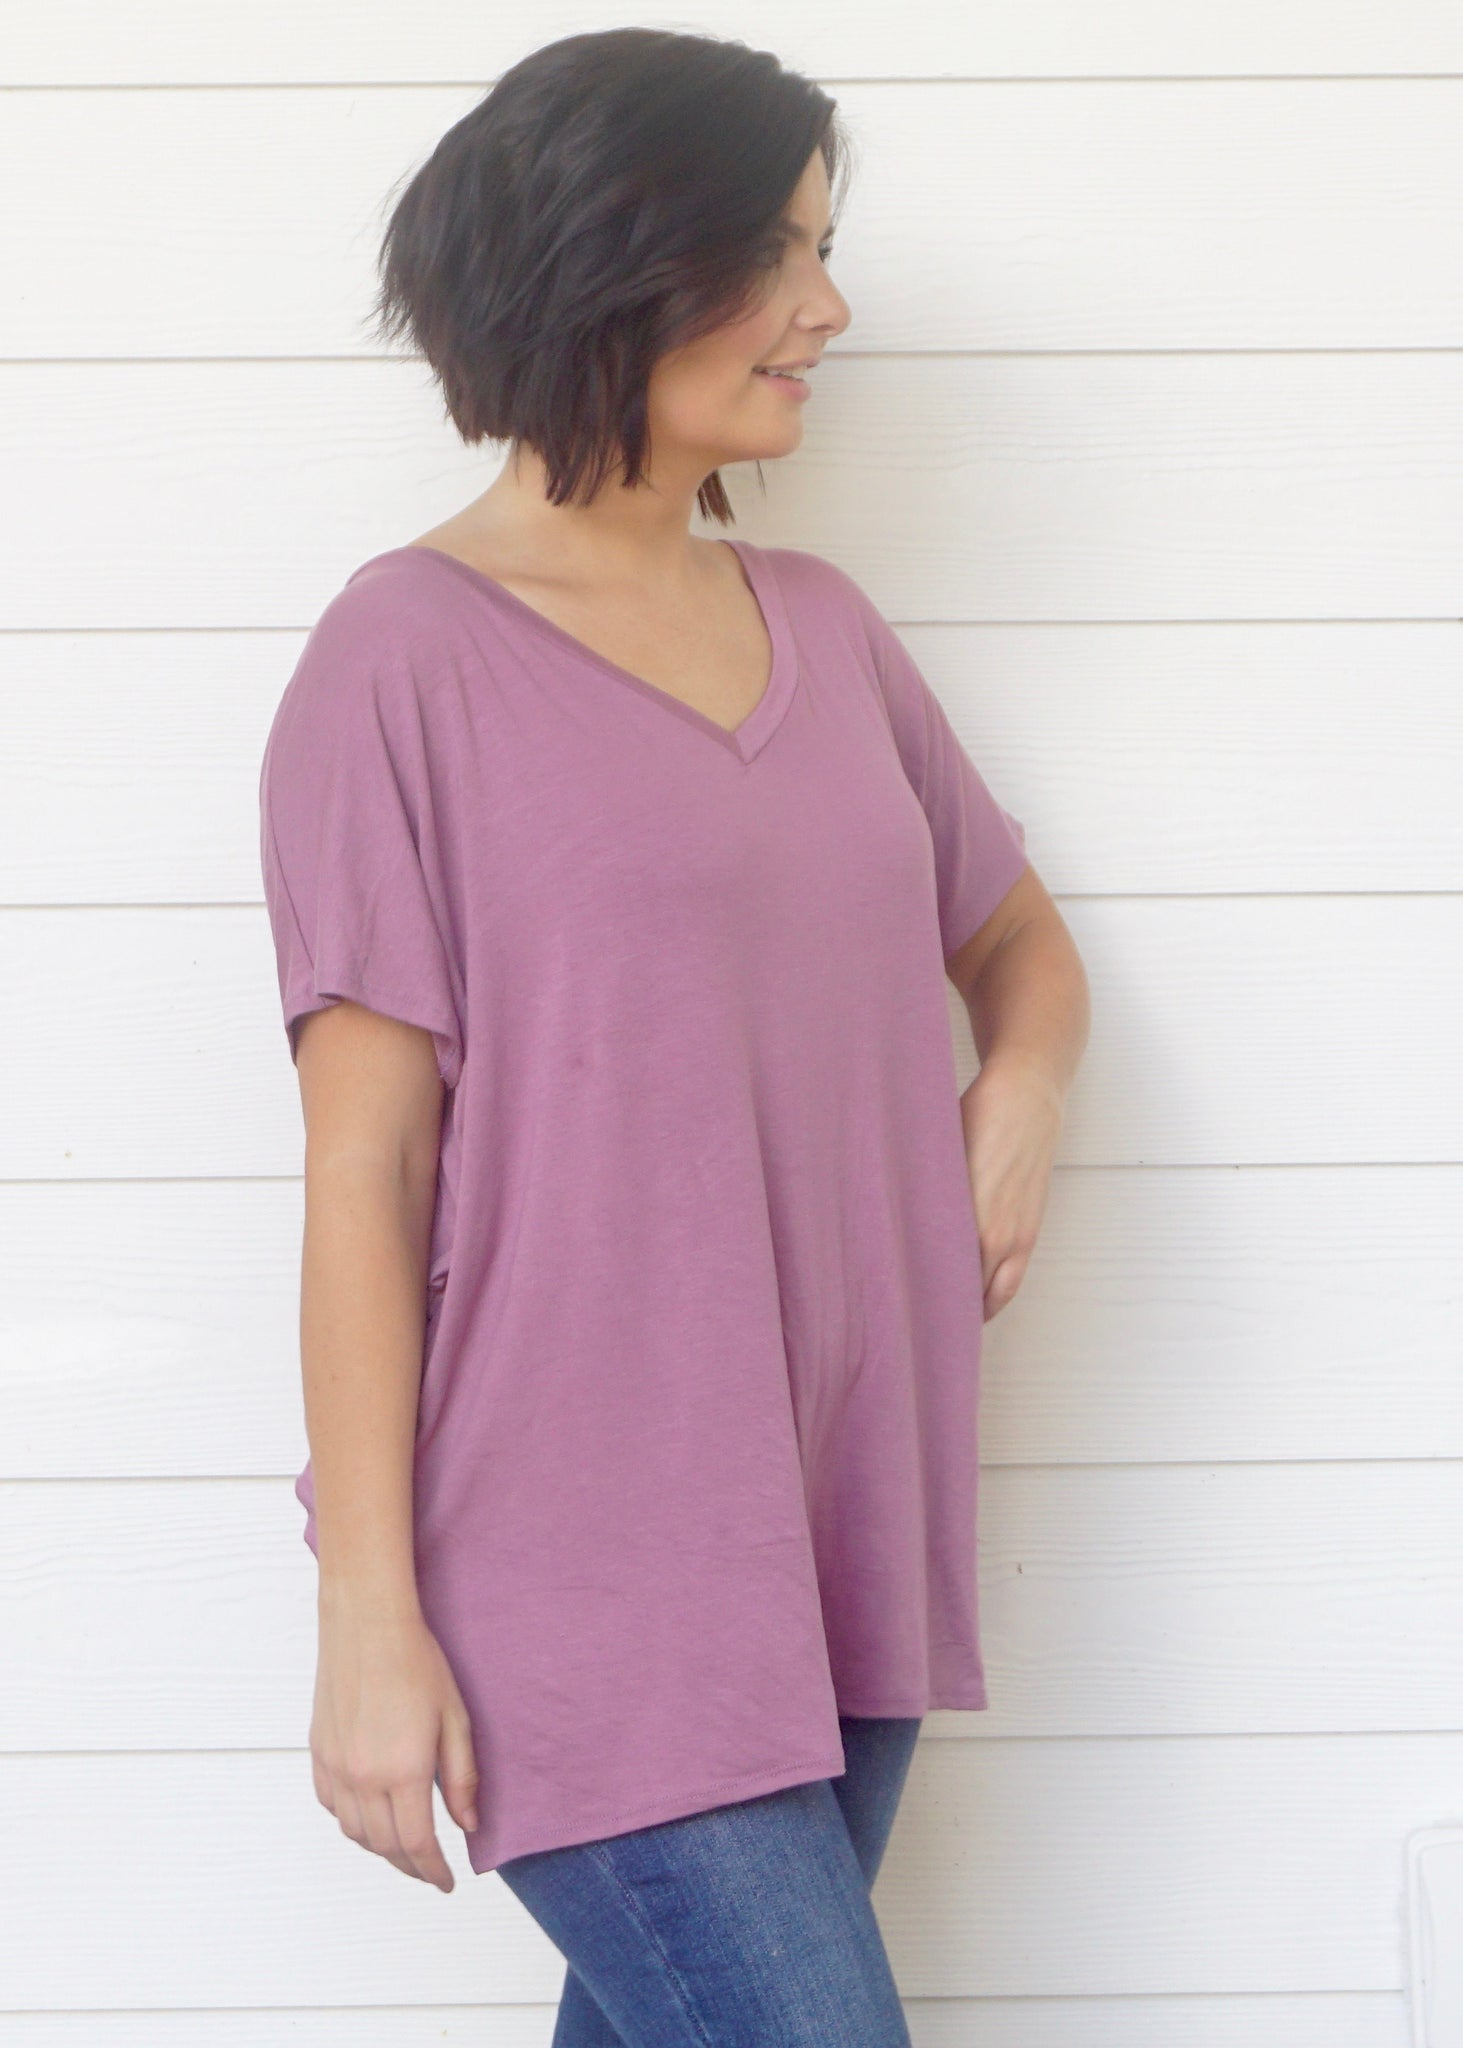 Lovely Lavender Top - Rae Rae's Boutique